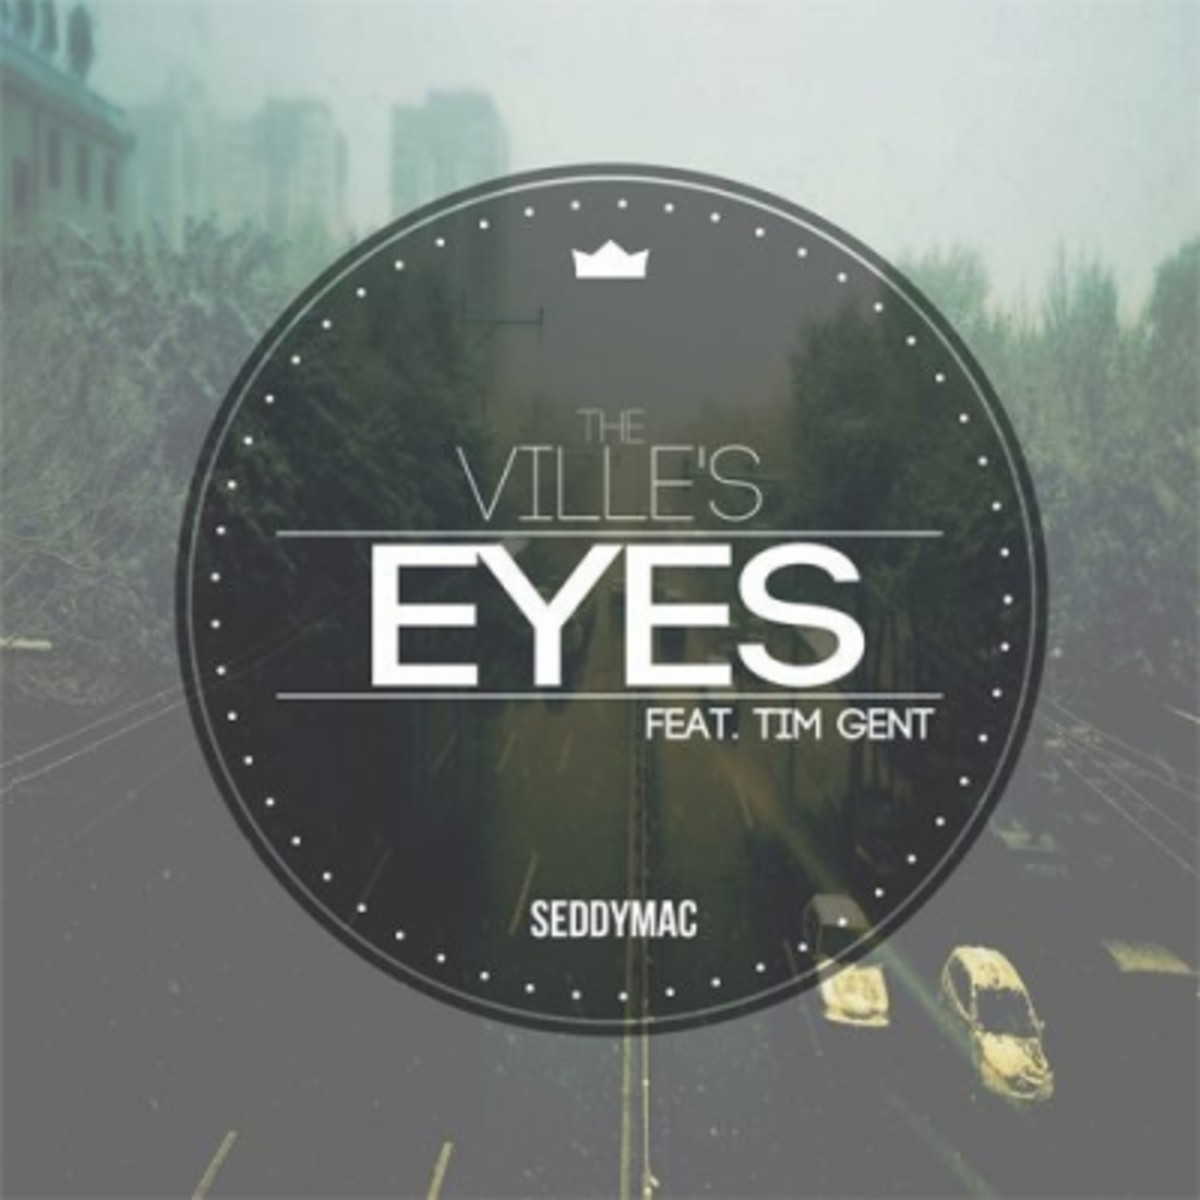 seddymac-the-villes-eyes.jpg